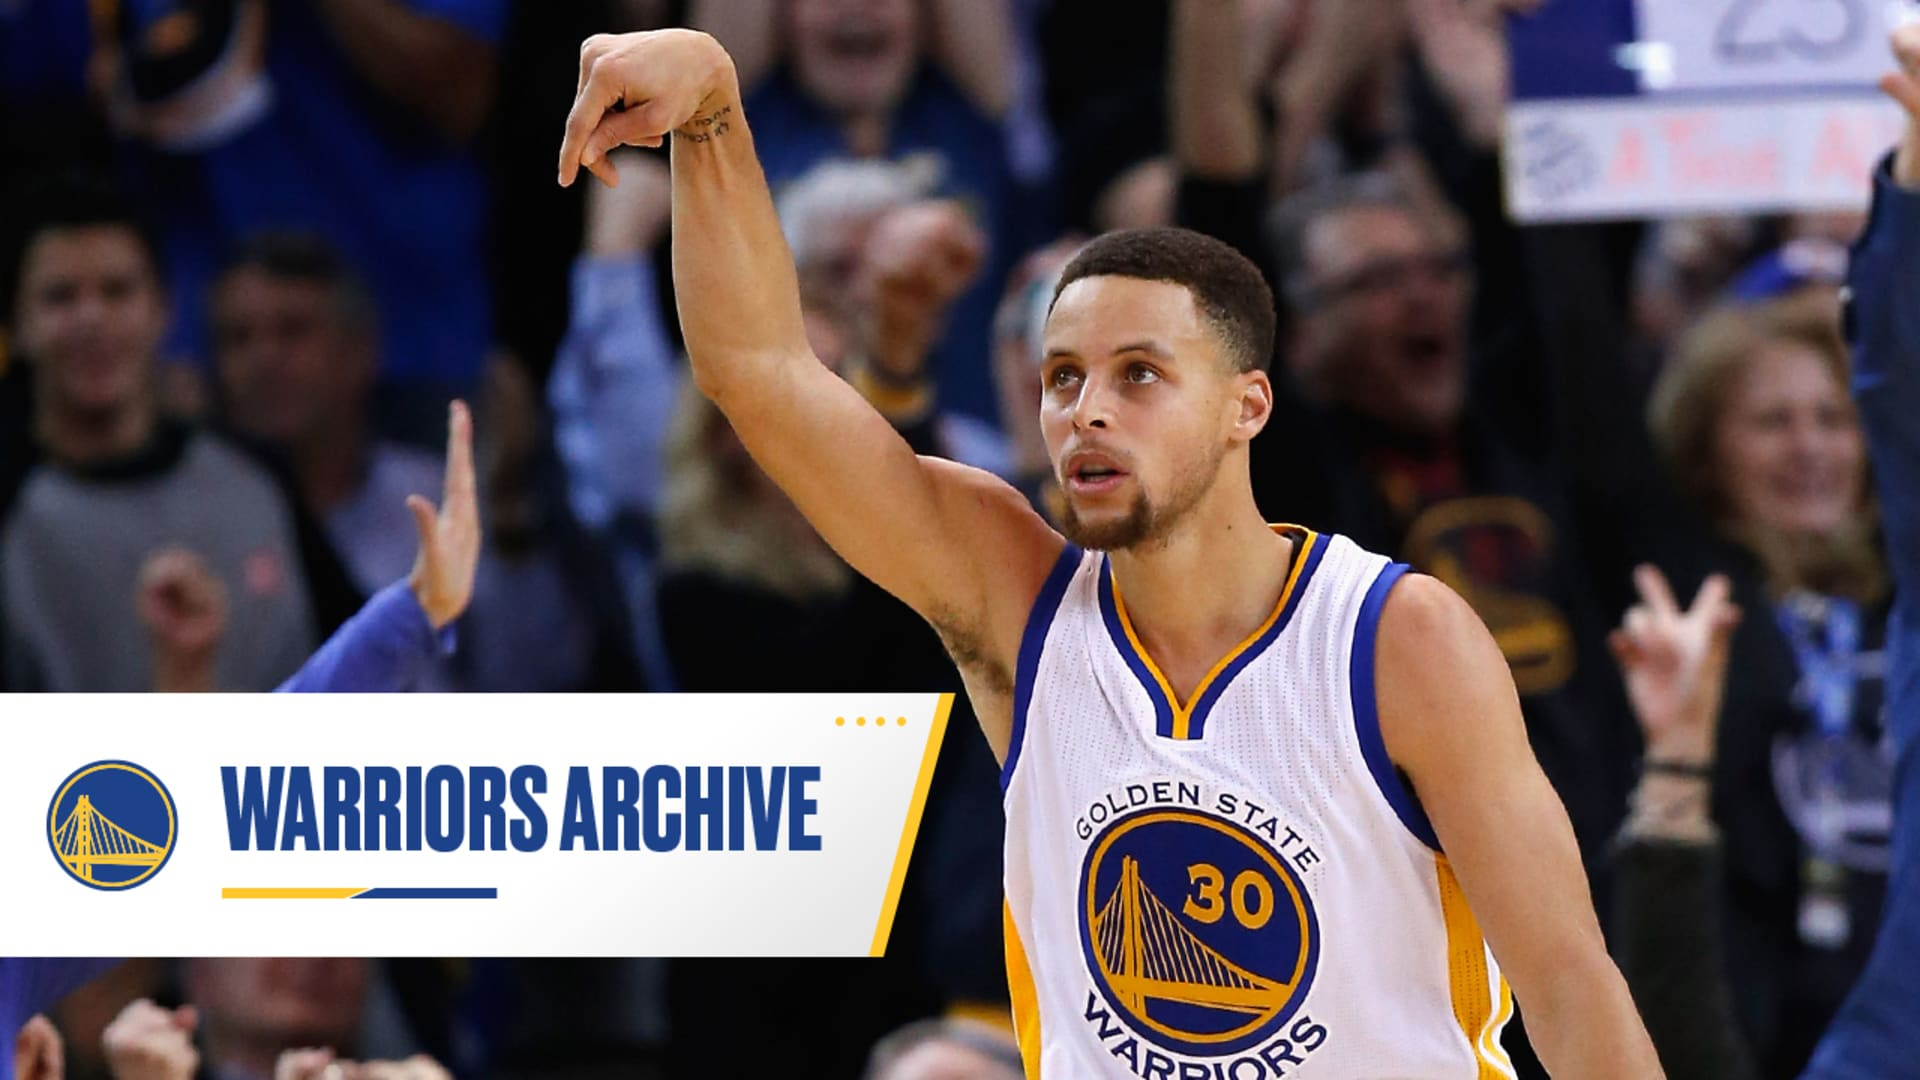 Stephen Curry Hits Half-Court Shot in Triple-Double and Win Over Pacers